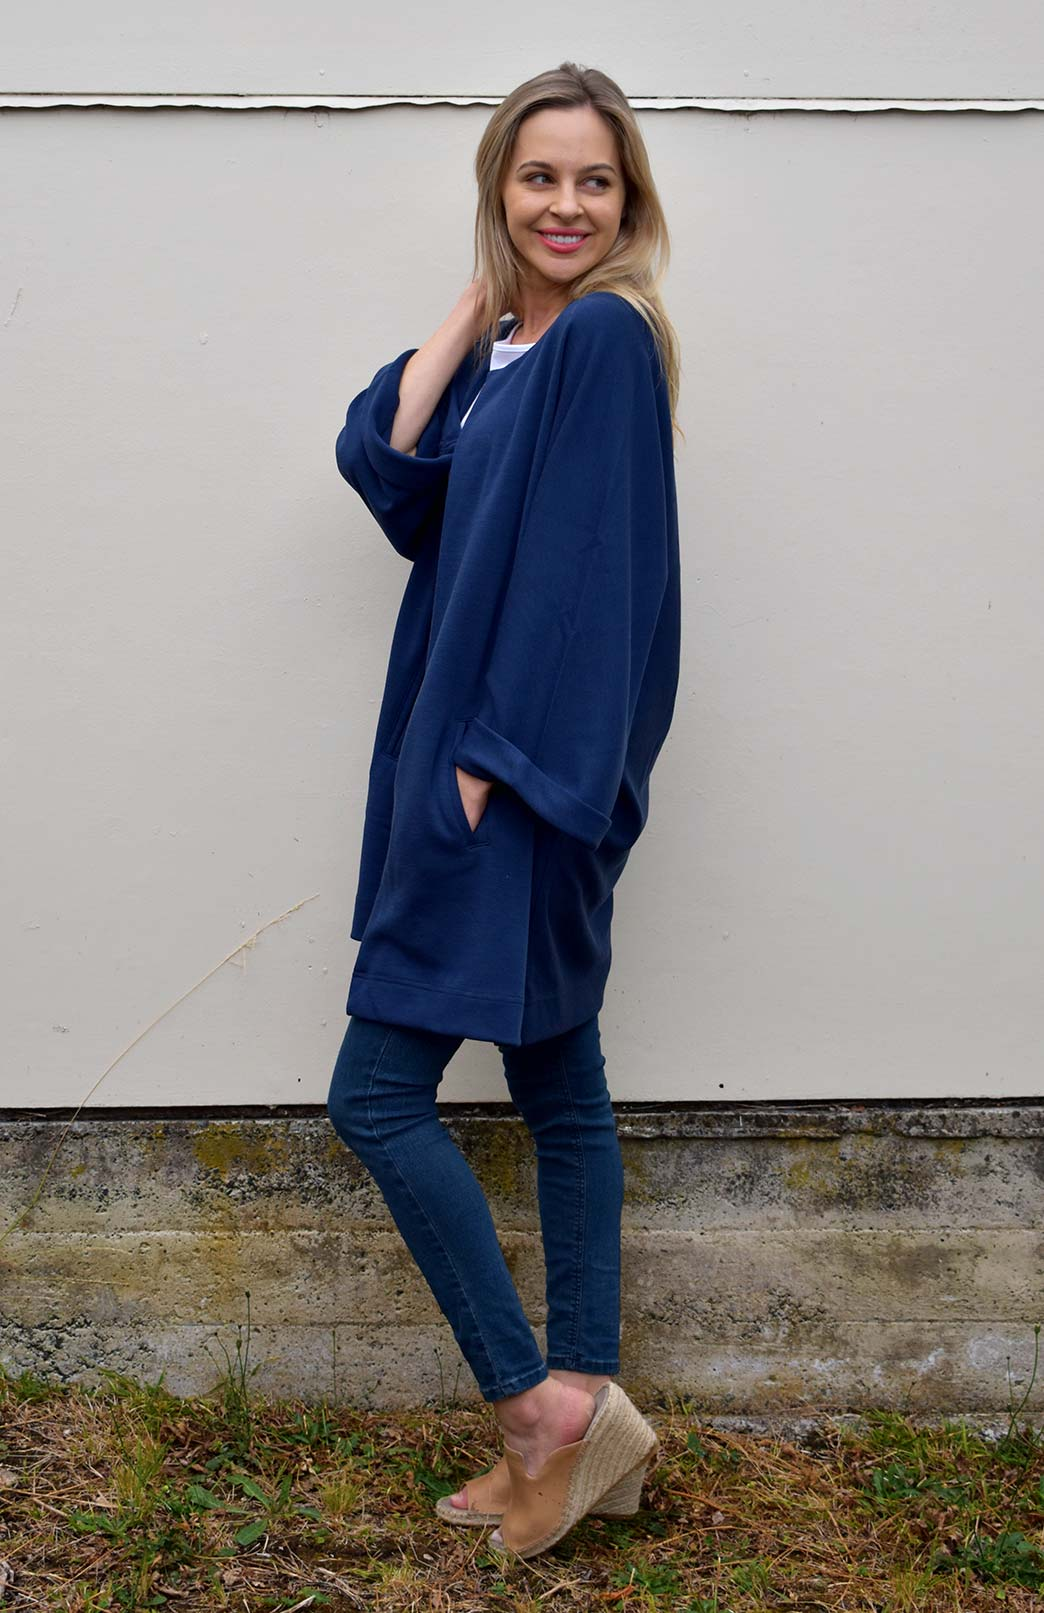 Kimono Coat - Women's Indigo Blue Heavyweight Woollen Kimono Coat with hook and eye fastening and side pockets - Smitten Merino Tasmania Australia